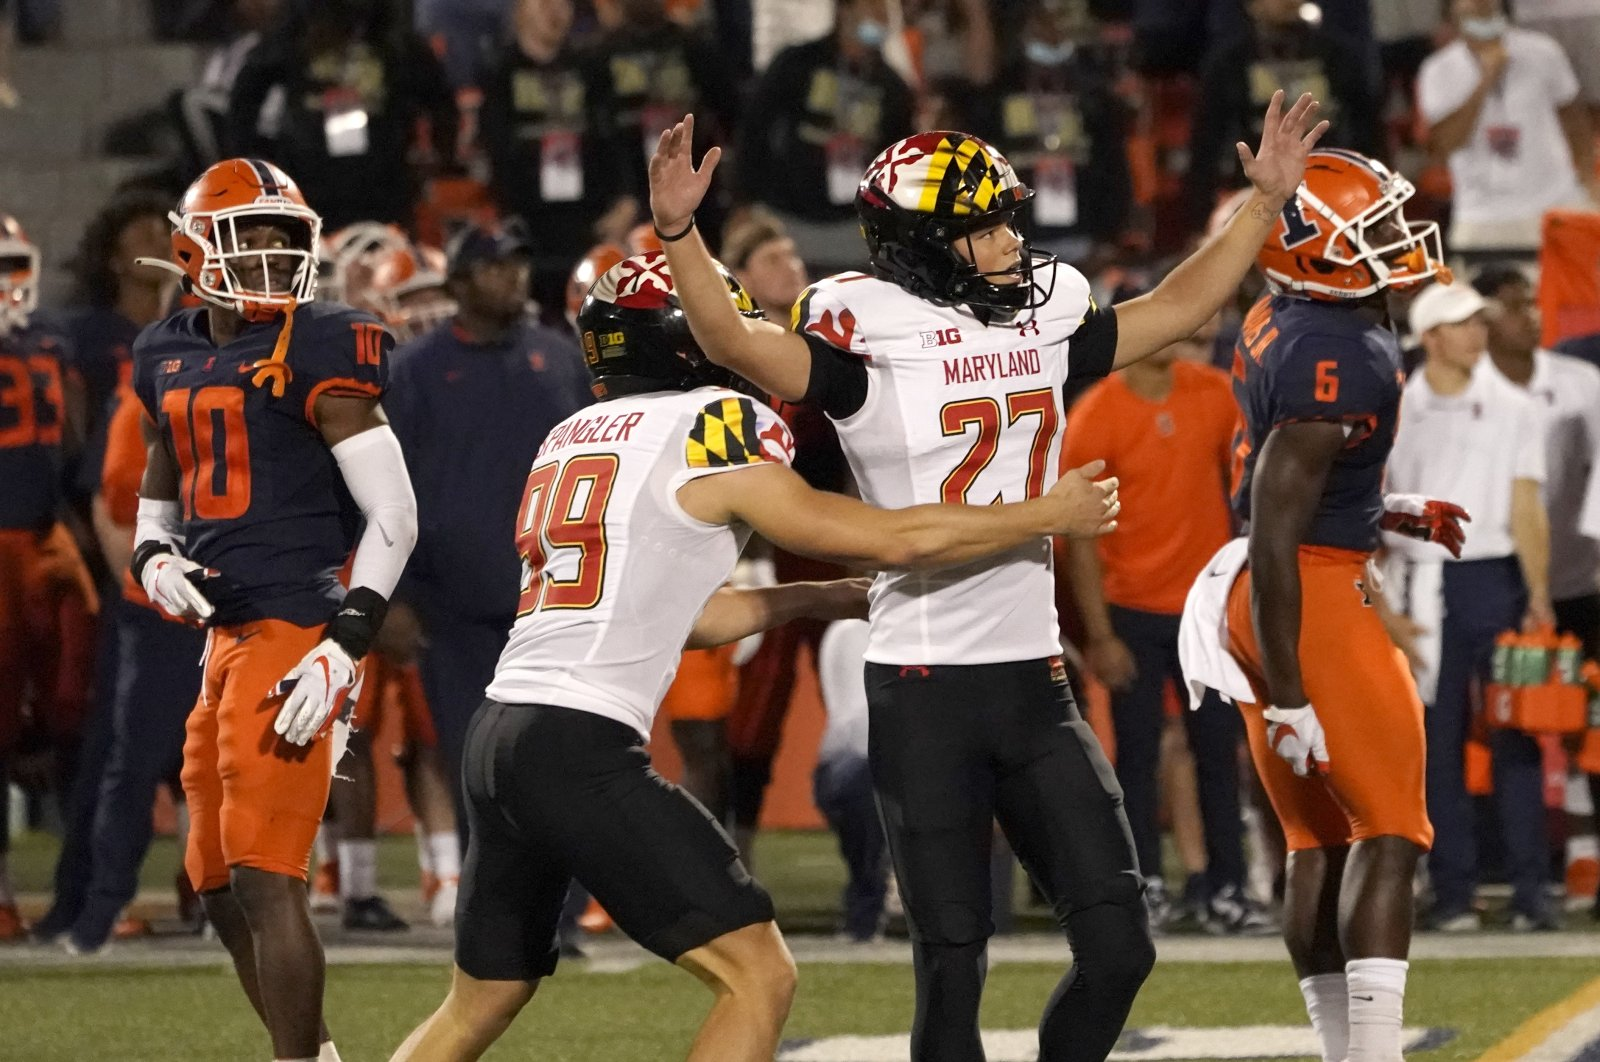 Maryland's Joseph Petrino celebrates his game-winning field goal with holder Colton Spangler during the second half of the team's college football game against Illinois at Memorial Stadium, Champaign, Illinois, U.S., Sept. 17, 2021. (AP Photo)